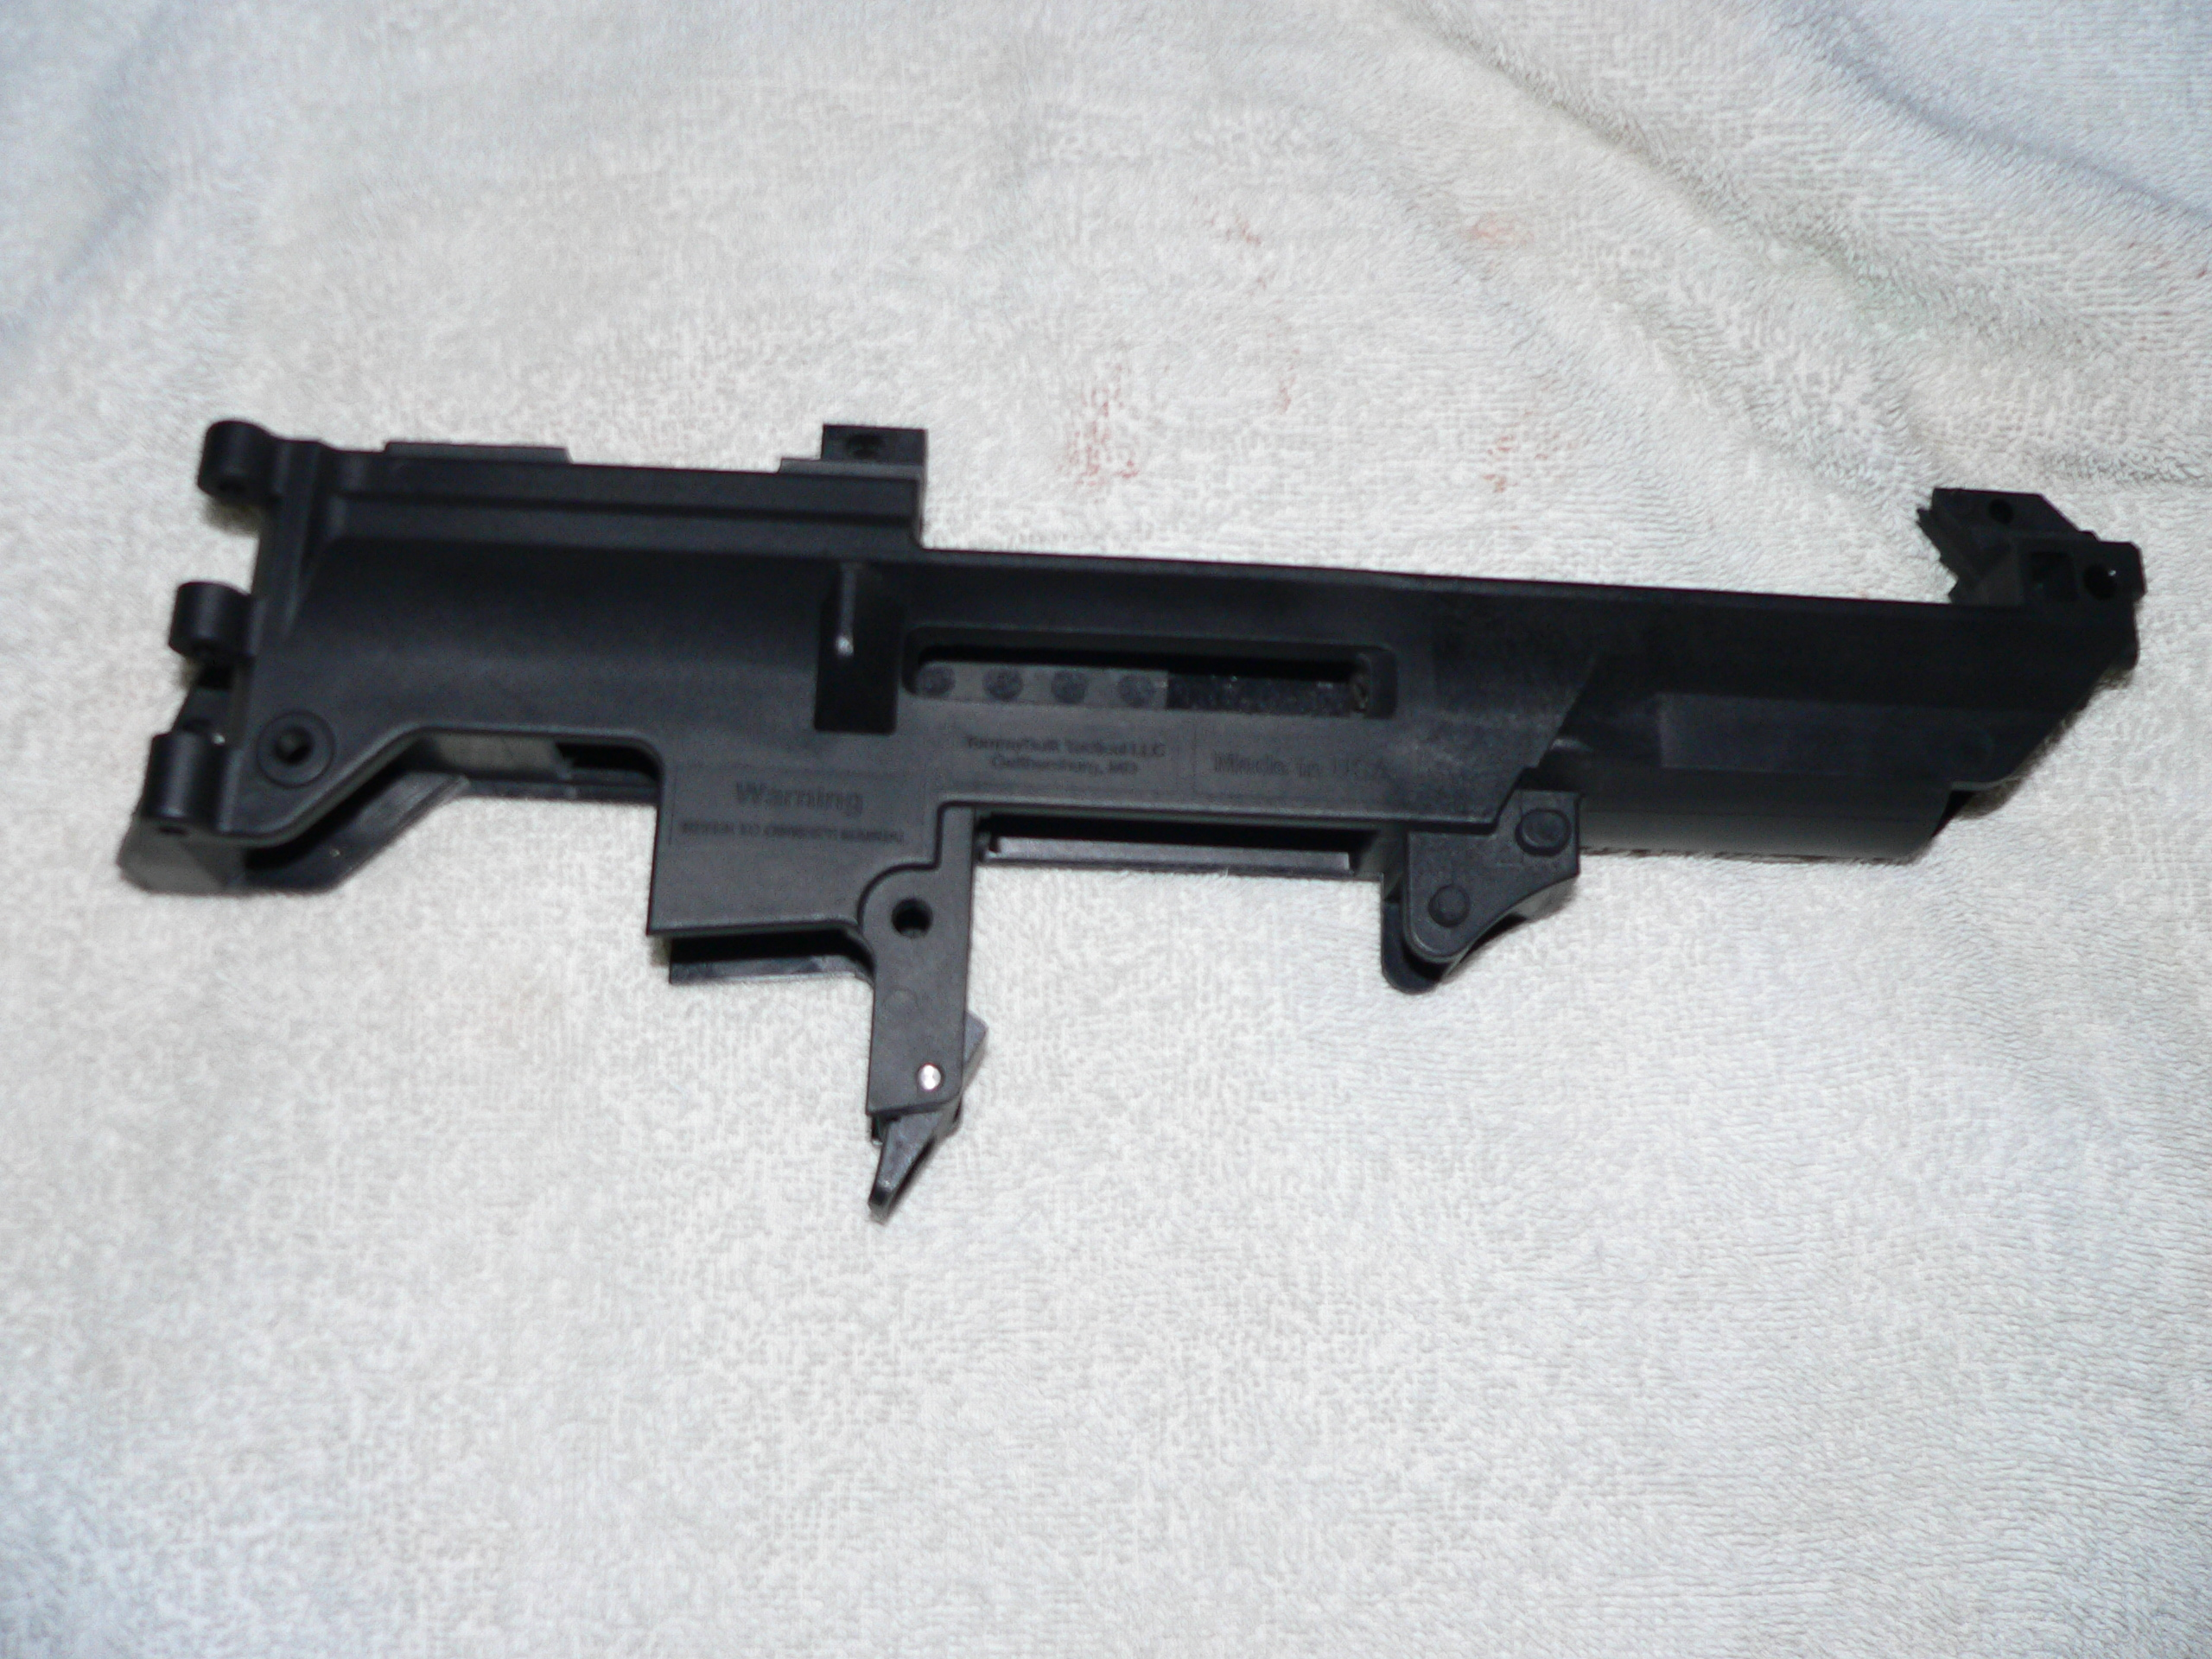 WTS: Brand New Virgin Tommy Built T36 Receiver 0.00 No Waiting/PICS-p1030057.jpg